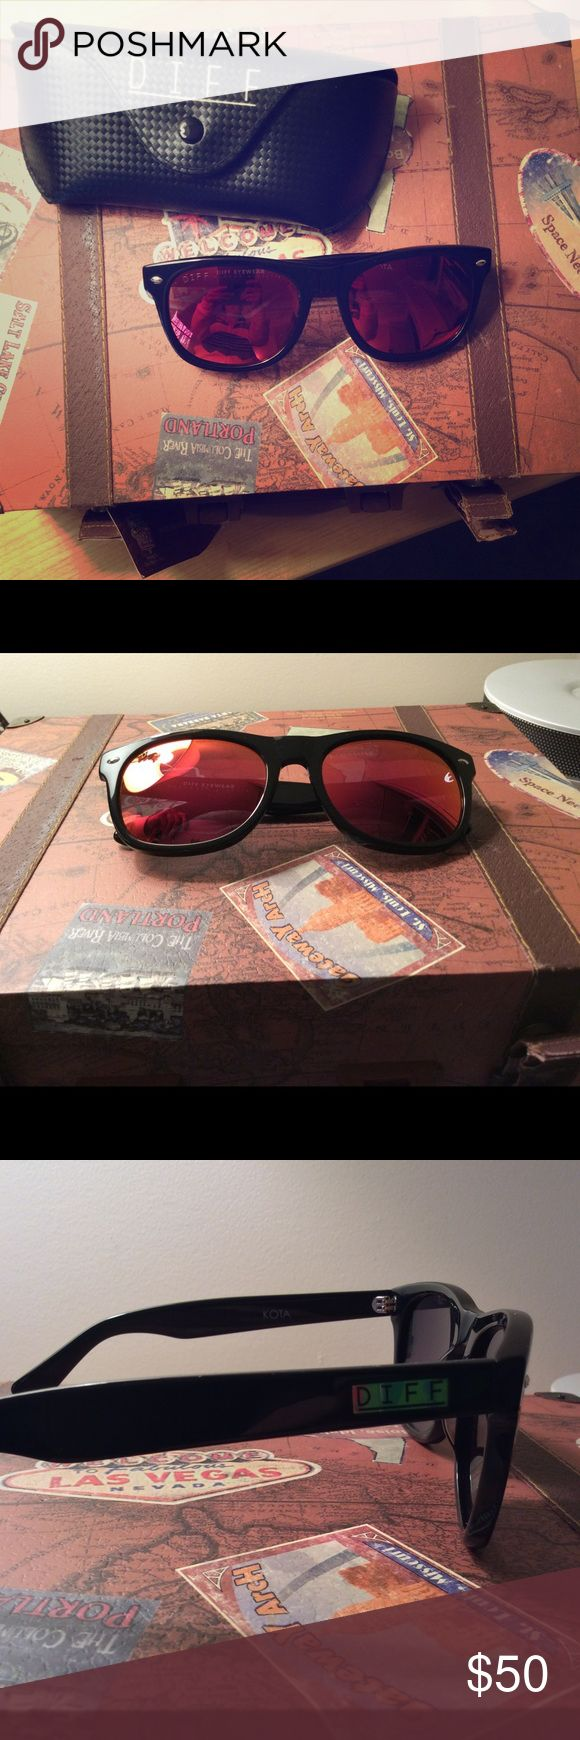 Original Diff Eyewear Kota Red Polarized glasses Original Diff Eyewear Kota Red Polarized glasses. These were worn twice. Comes with original case just no wipe for lenses. Excellent condition! Diff Eyewear Accessories Sunglasses